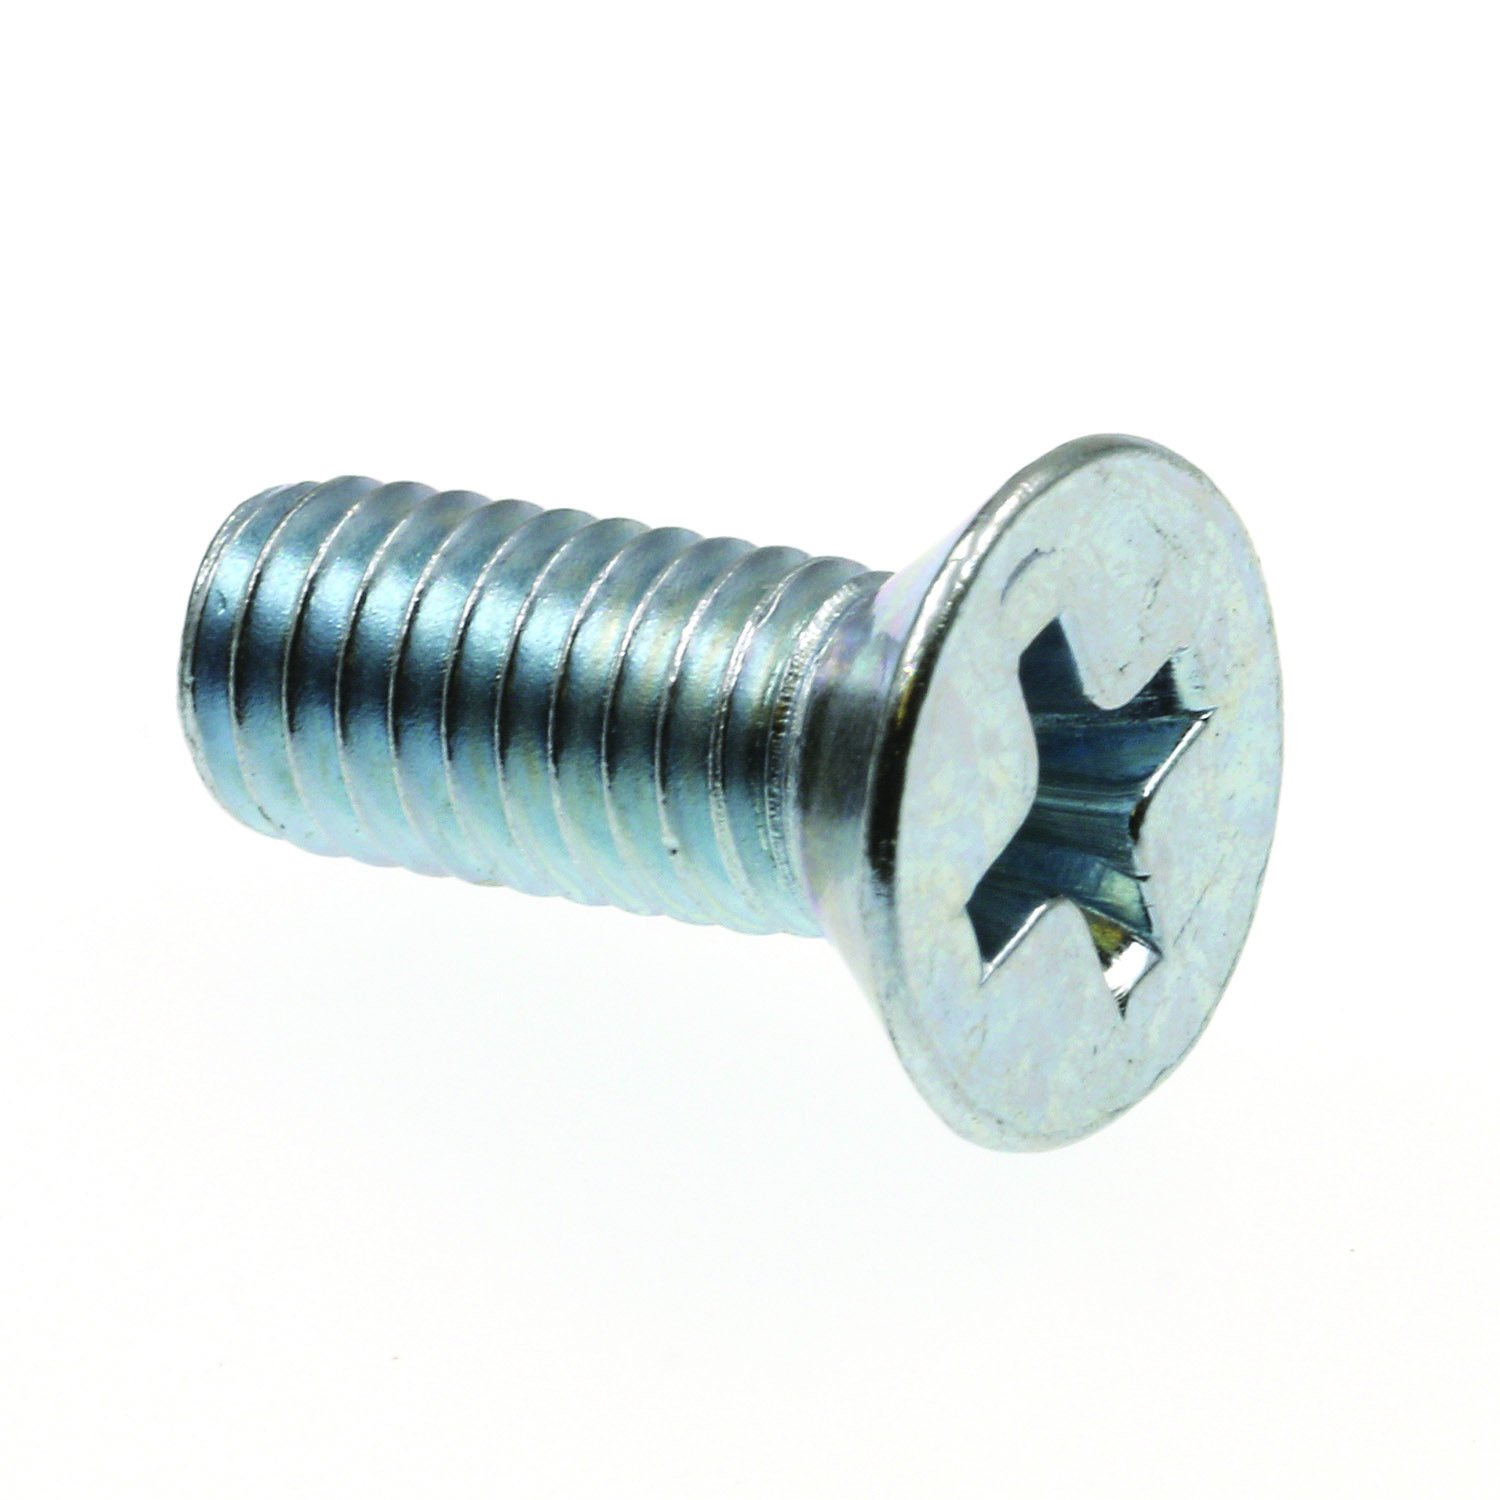 Prime-Line 9001025 Machine Screws 100-Pack Phillips Drive Flat Head Zinc Plated Steel #10-32 X 1//2 in.